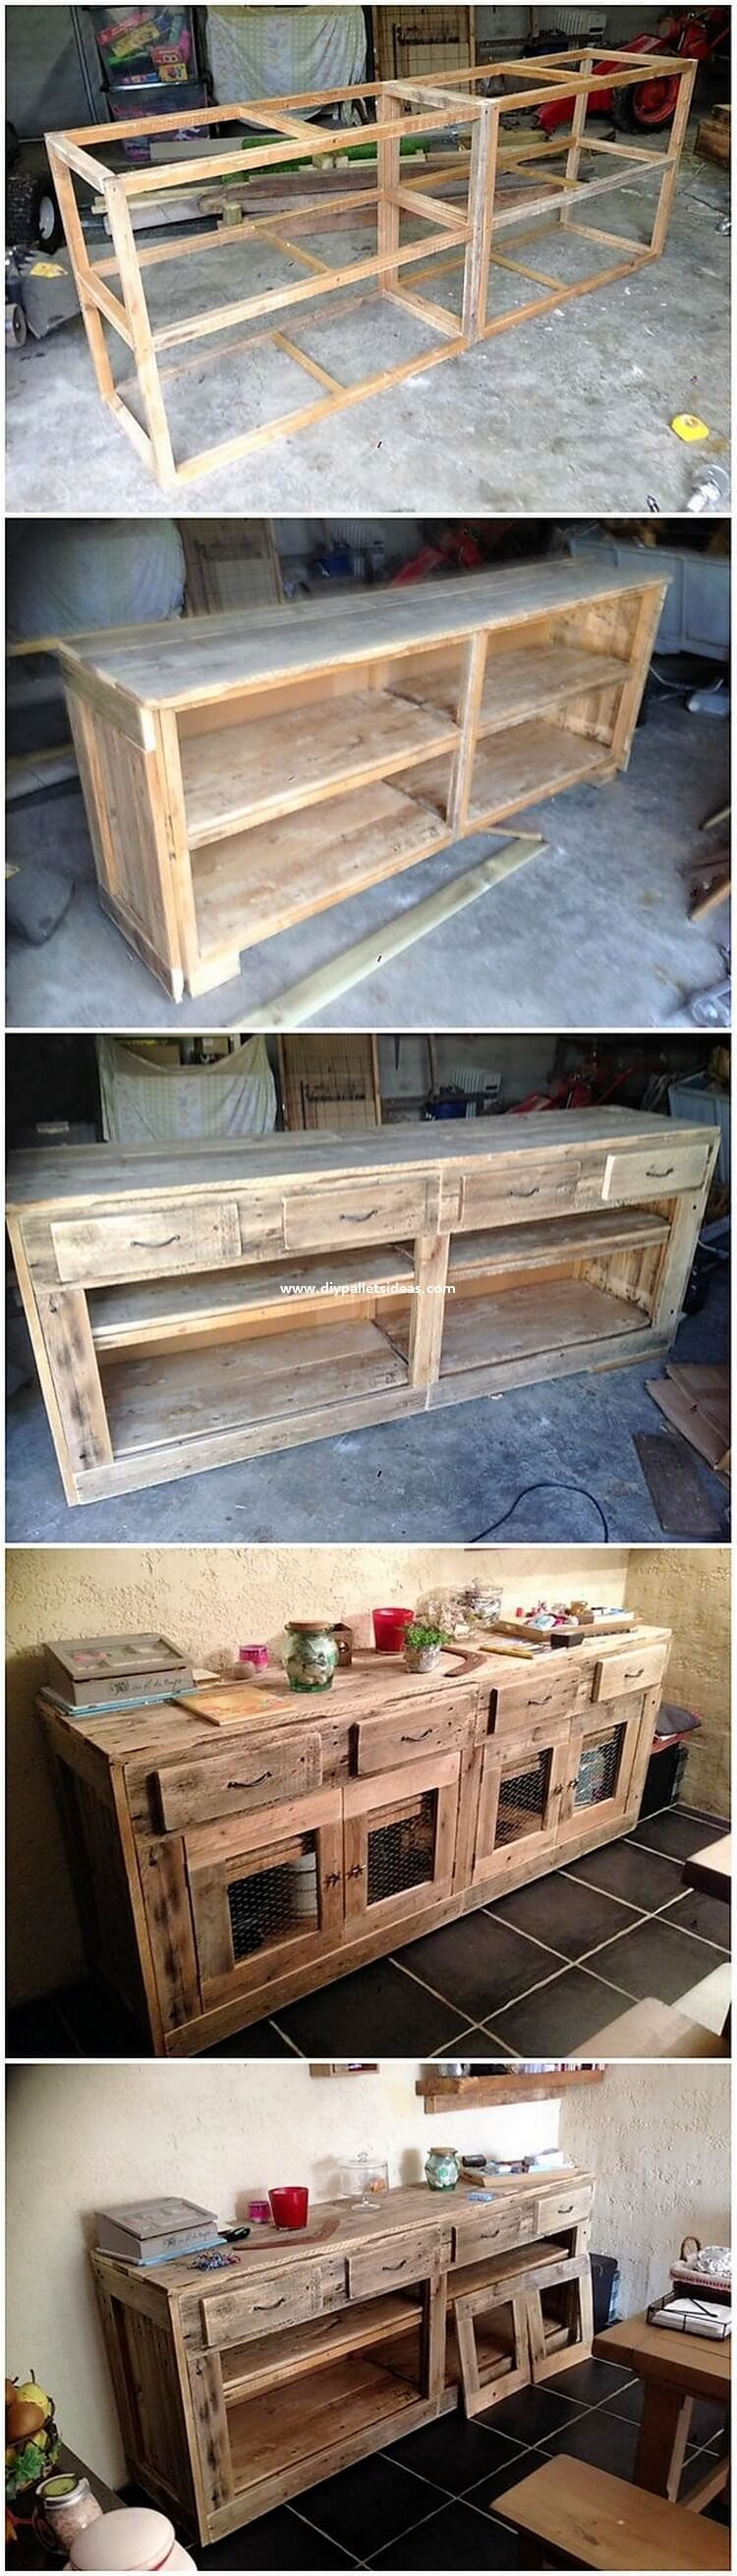 Breathtaking Diy Pallet Ideas For Your House Beautification